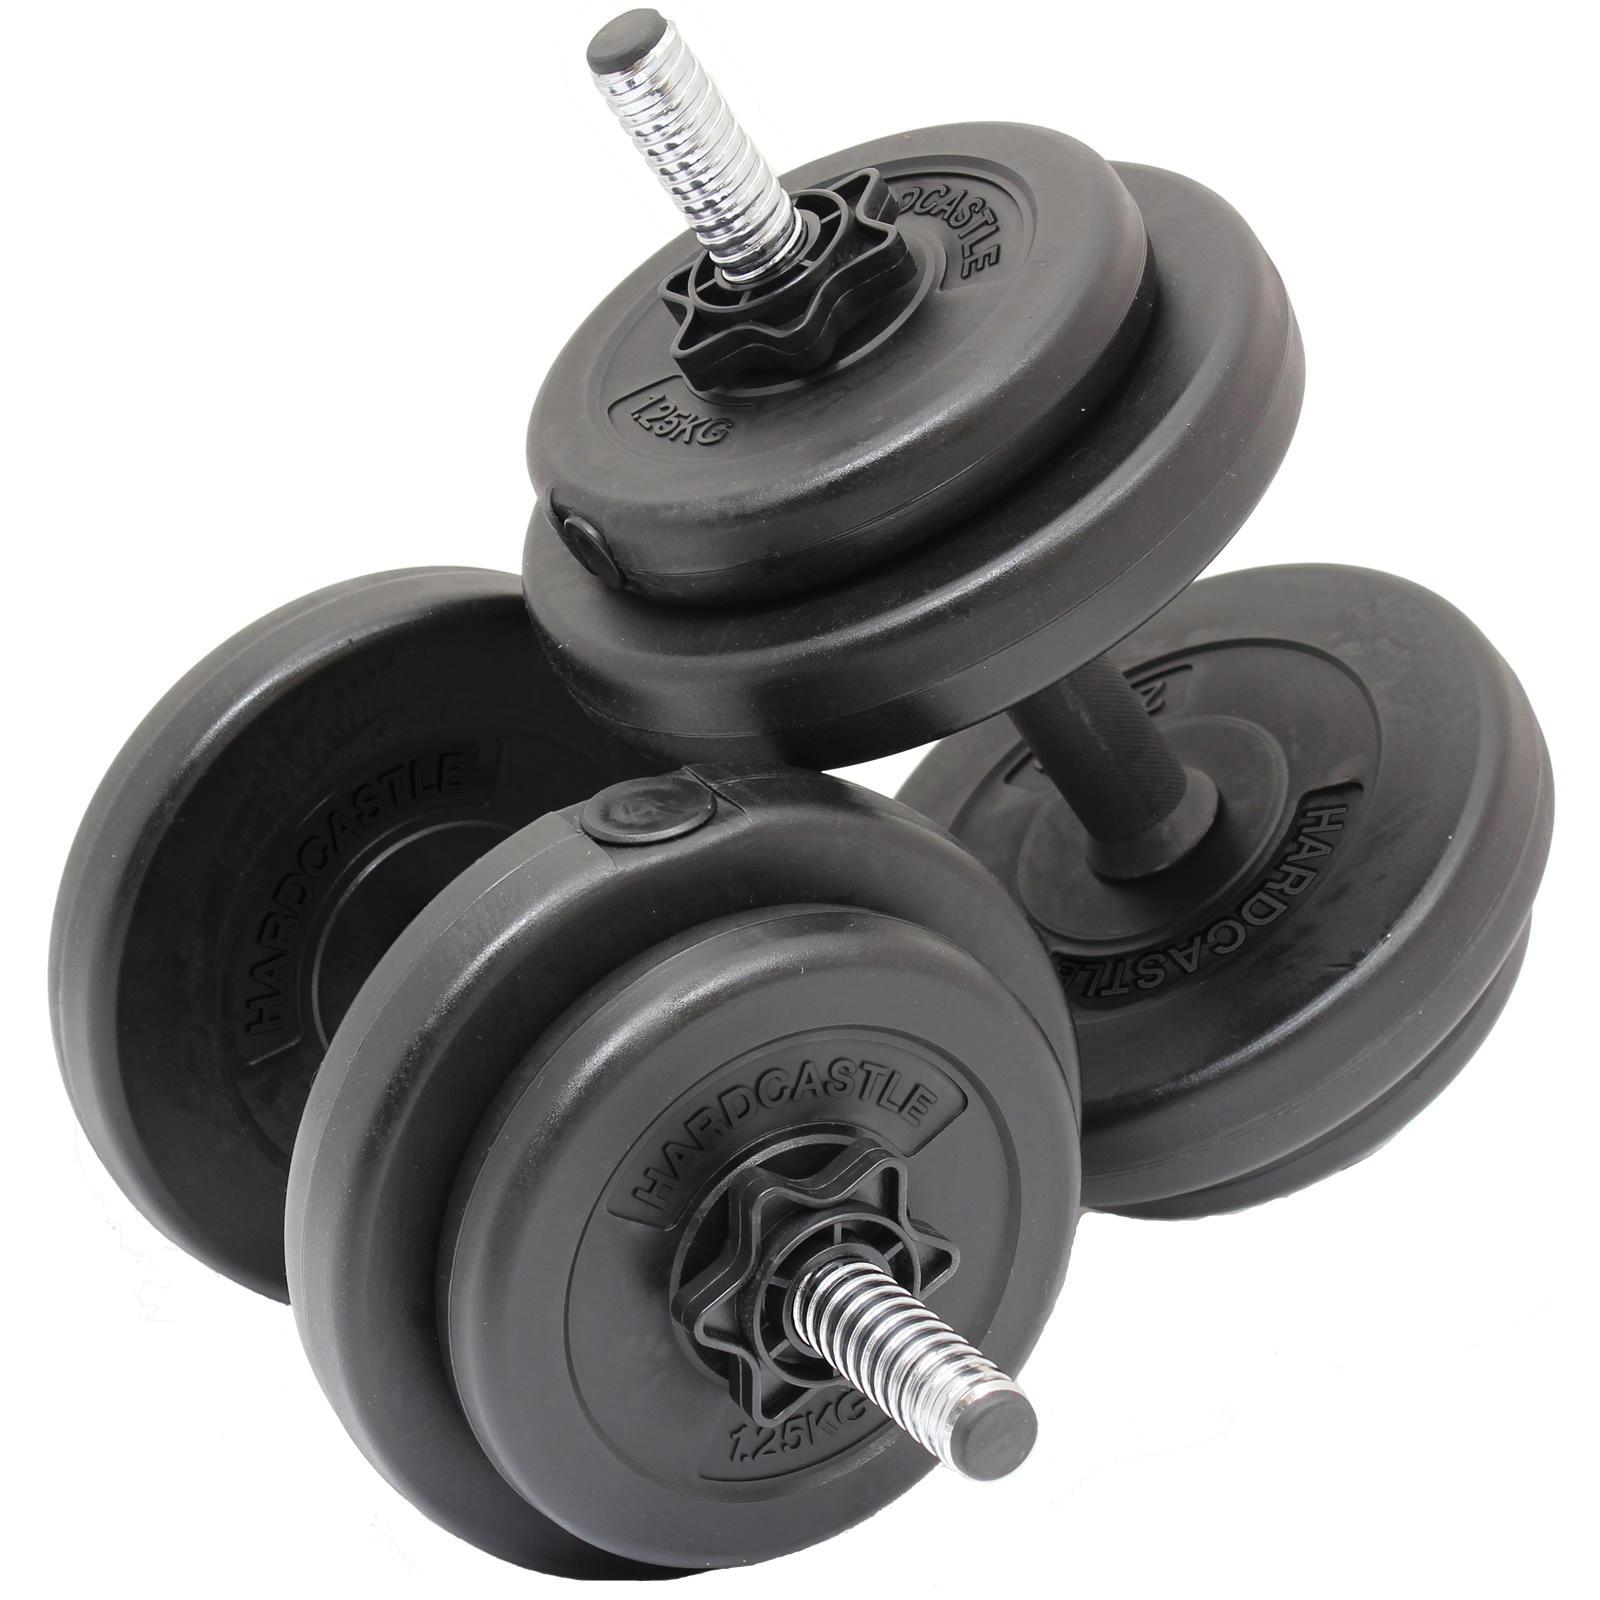 Kg dumbbell free weights set home gym workout training